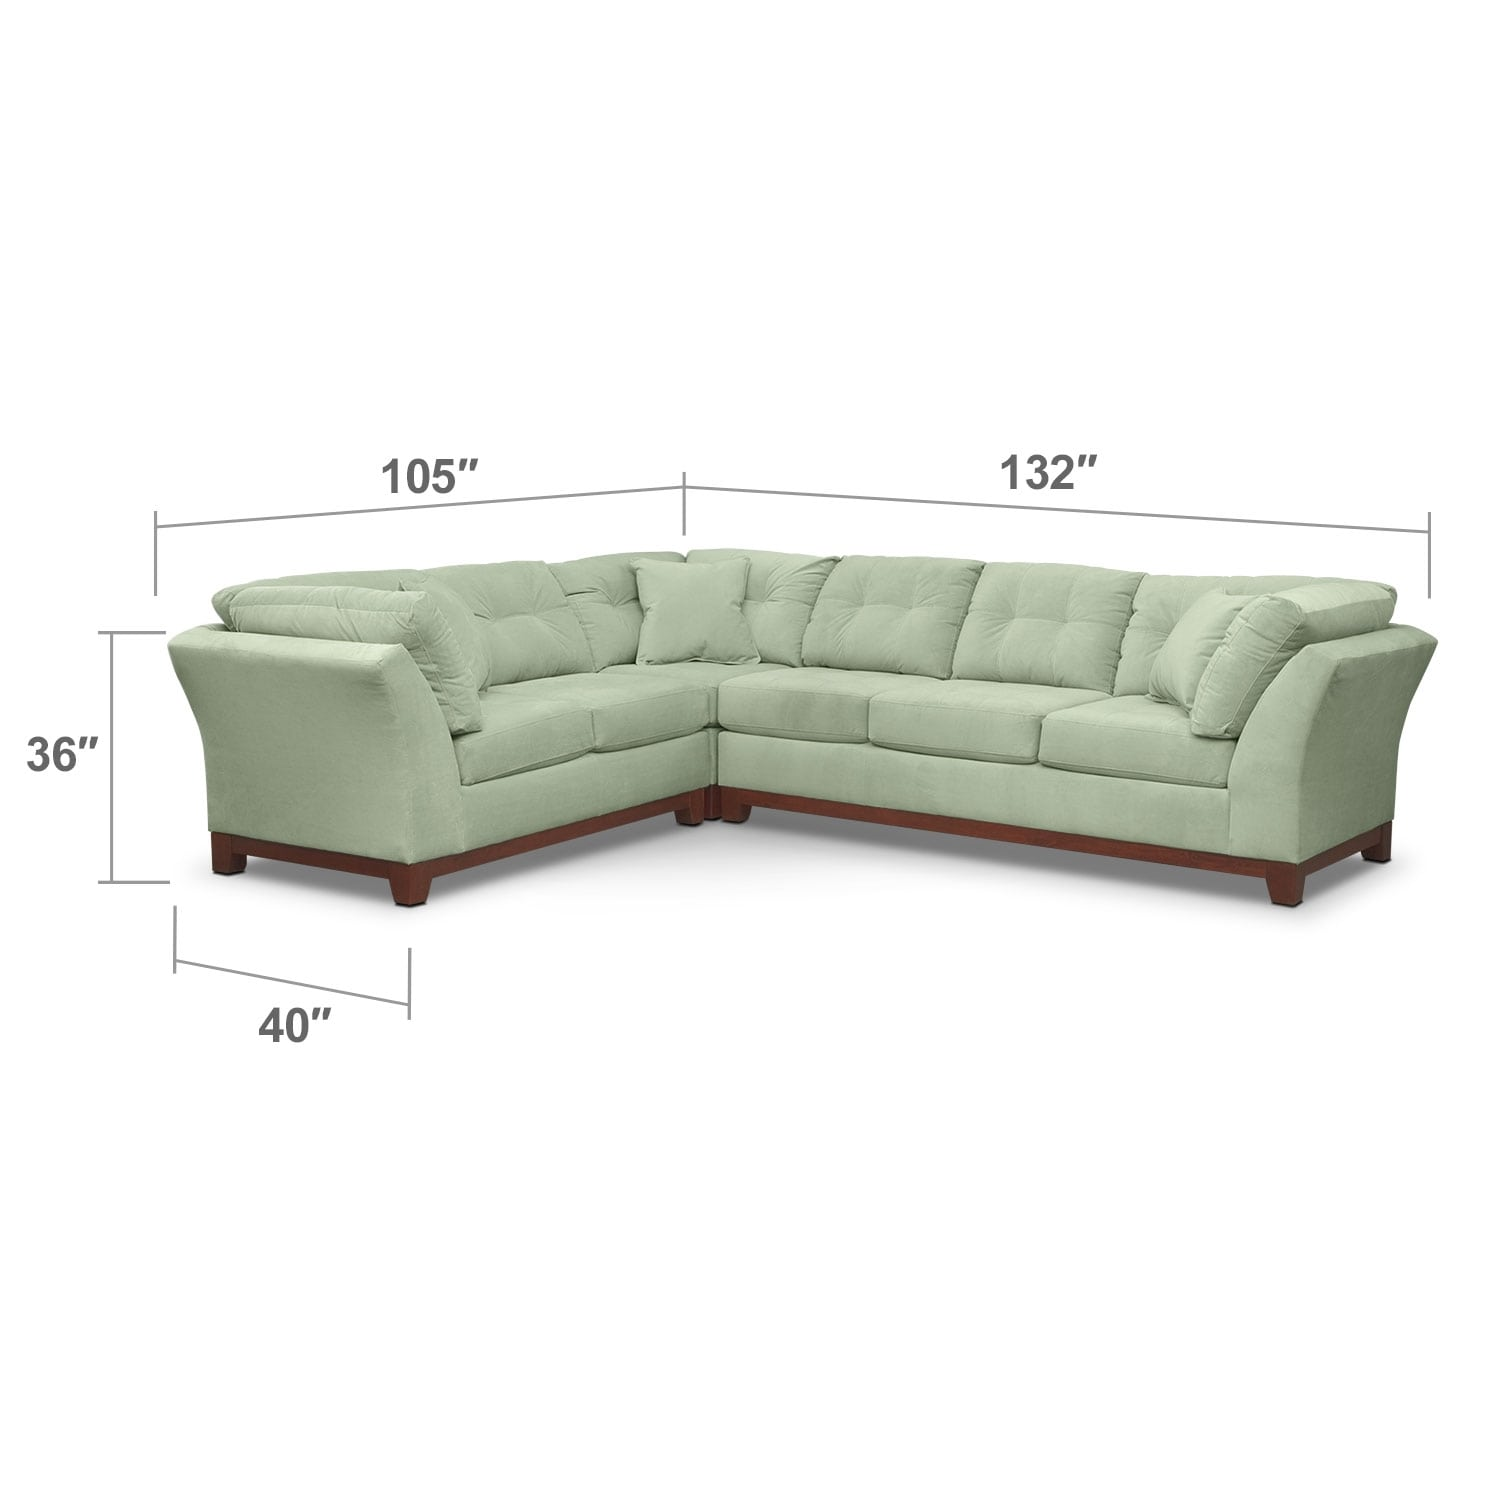 Living Room Furniture - Solace Spa II 3 Pc. Sectional